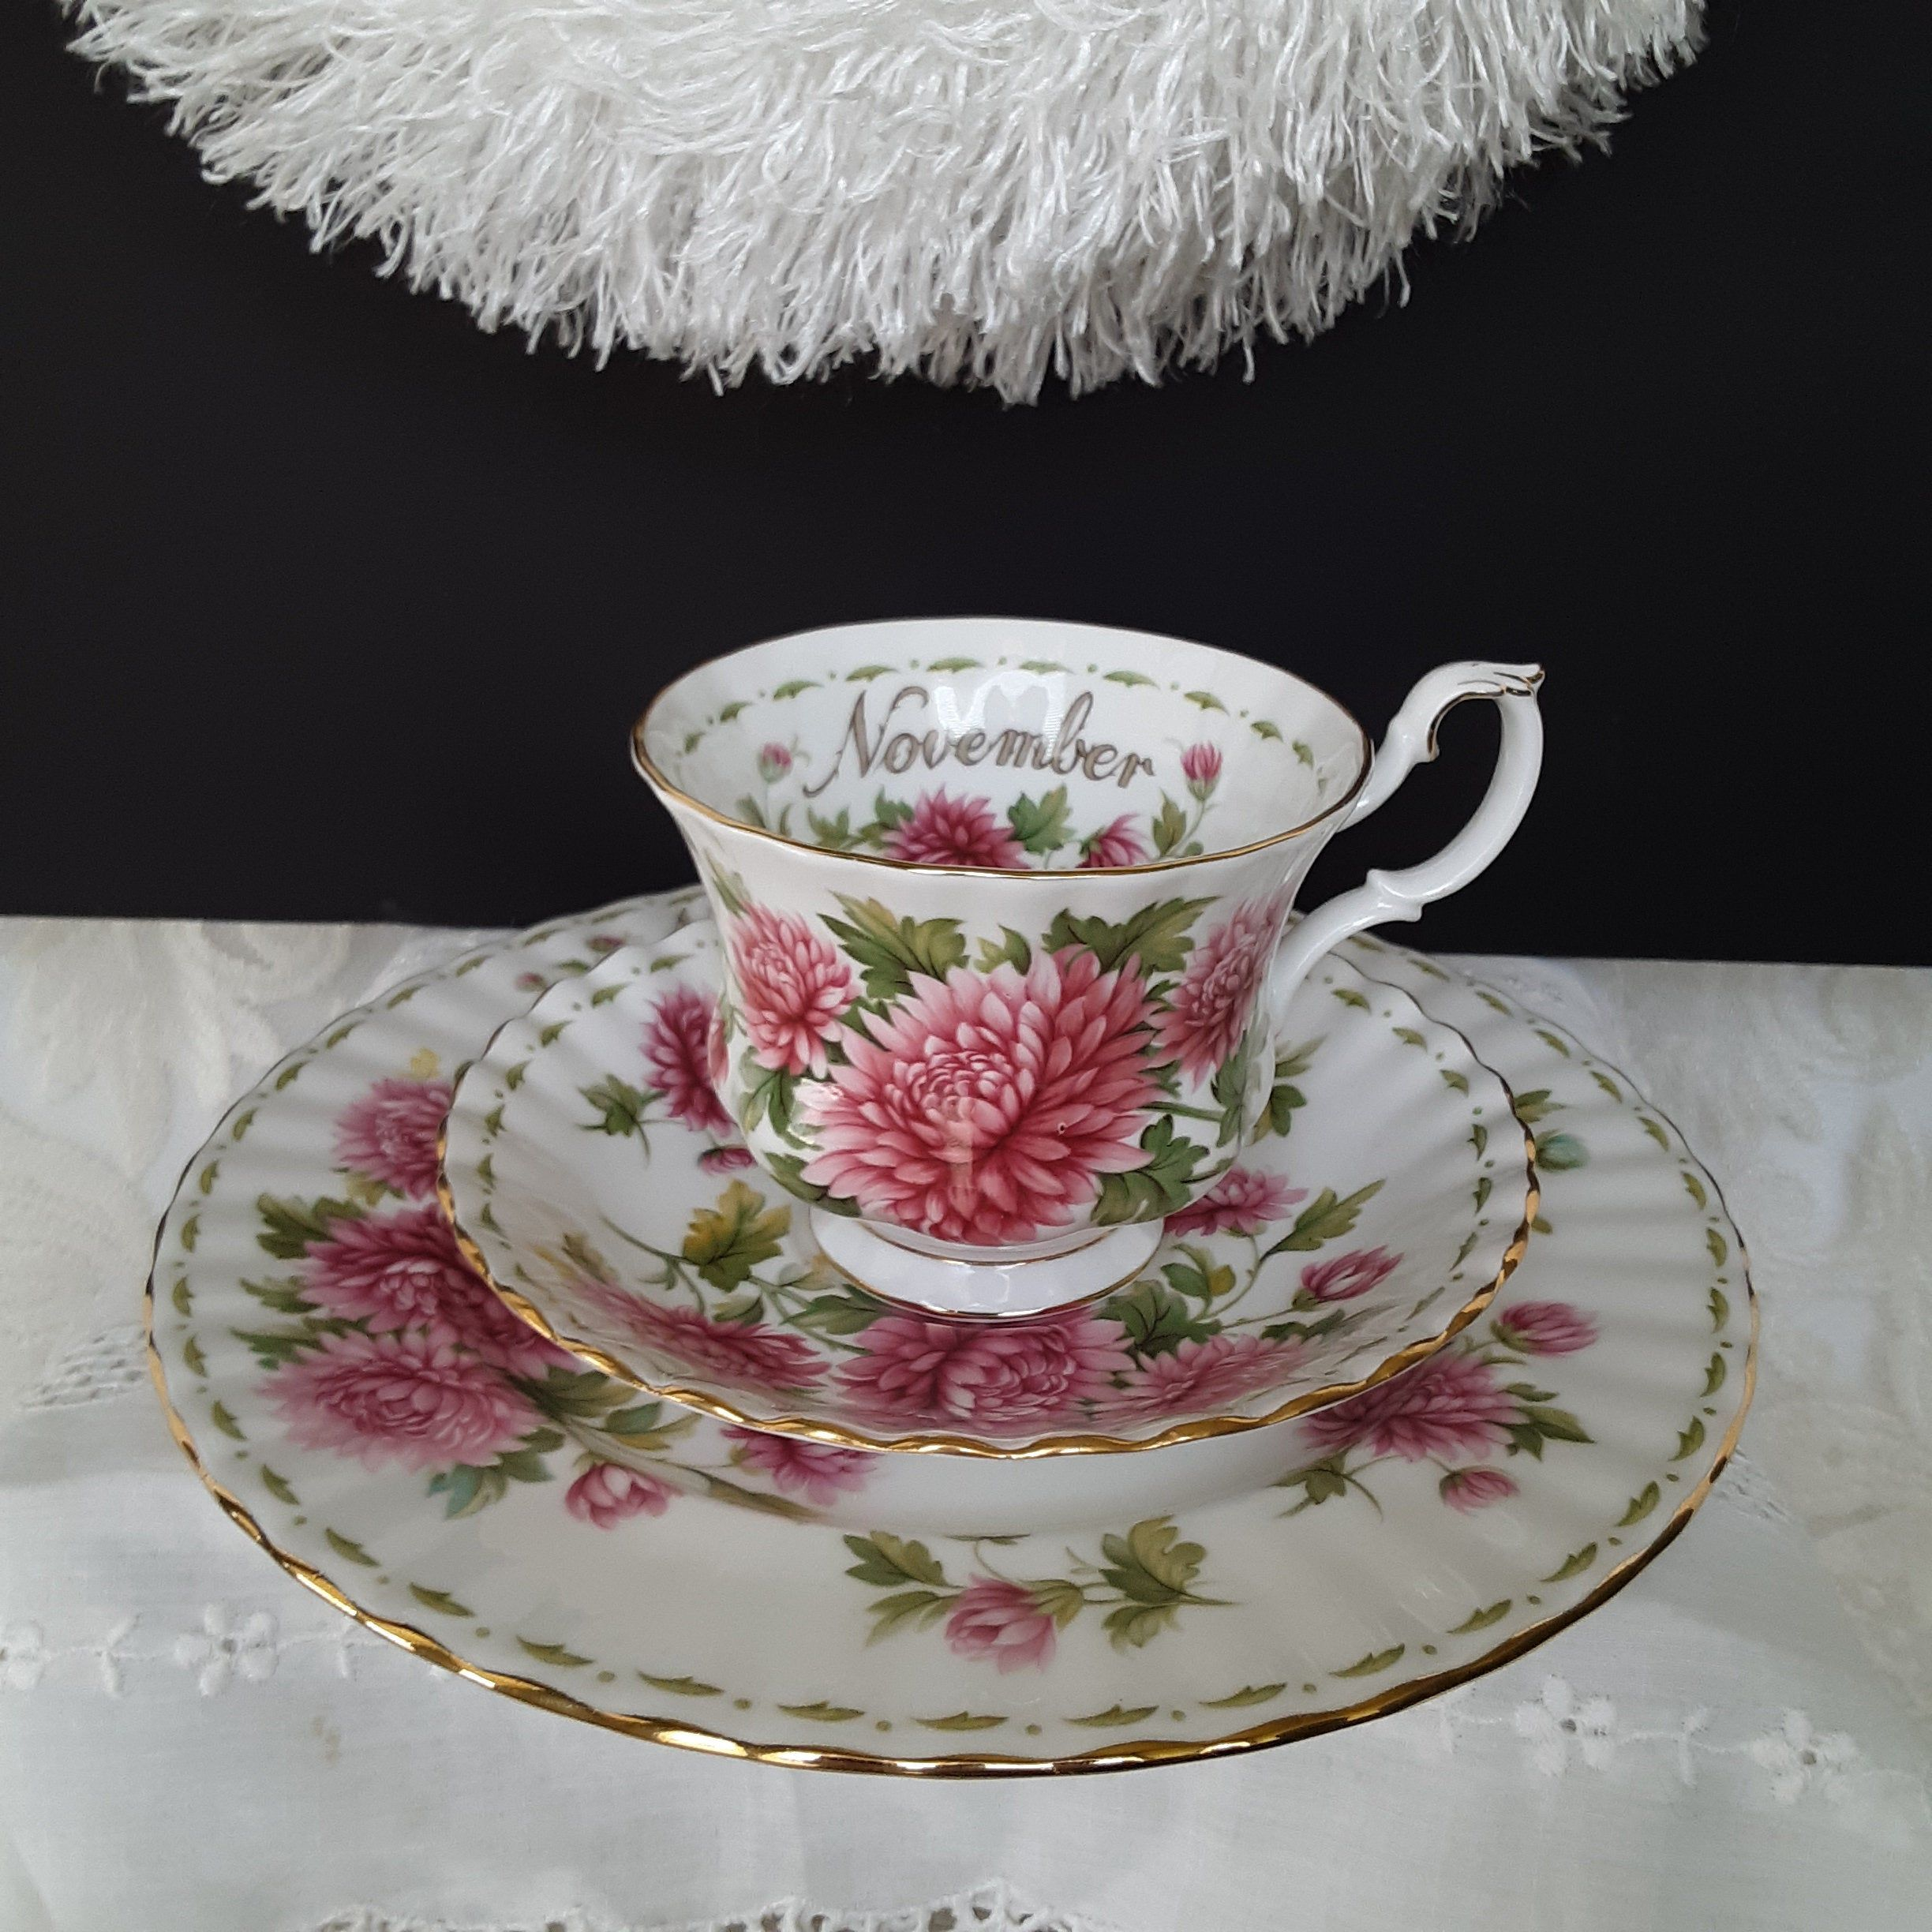 Royal Albert China, November Flower of the Month, Teacup